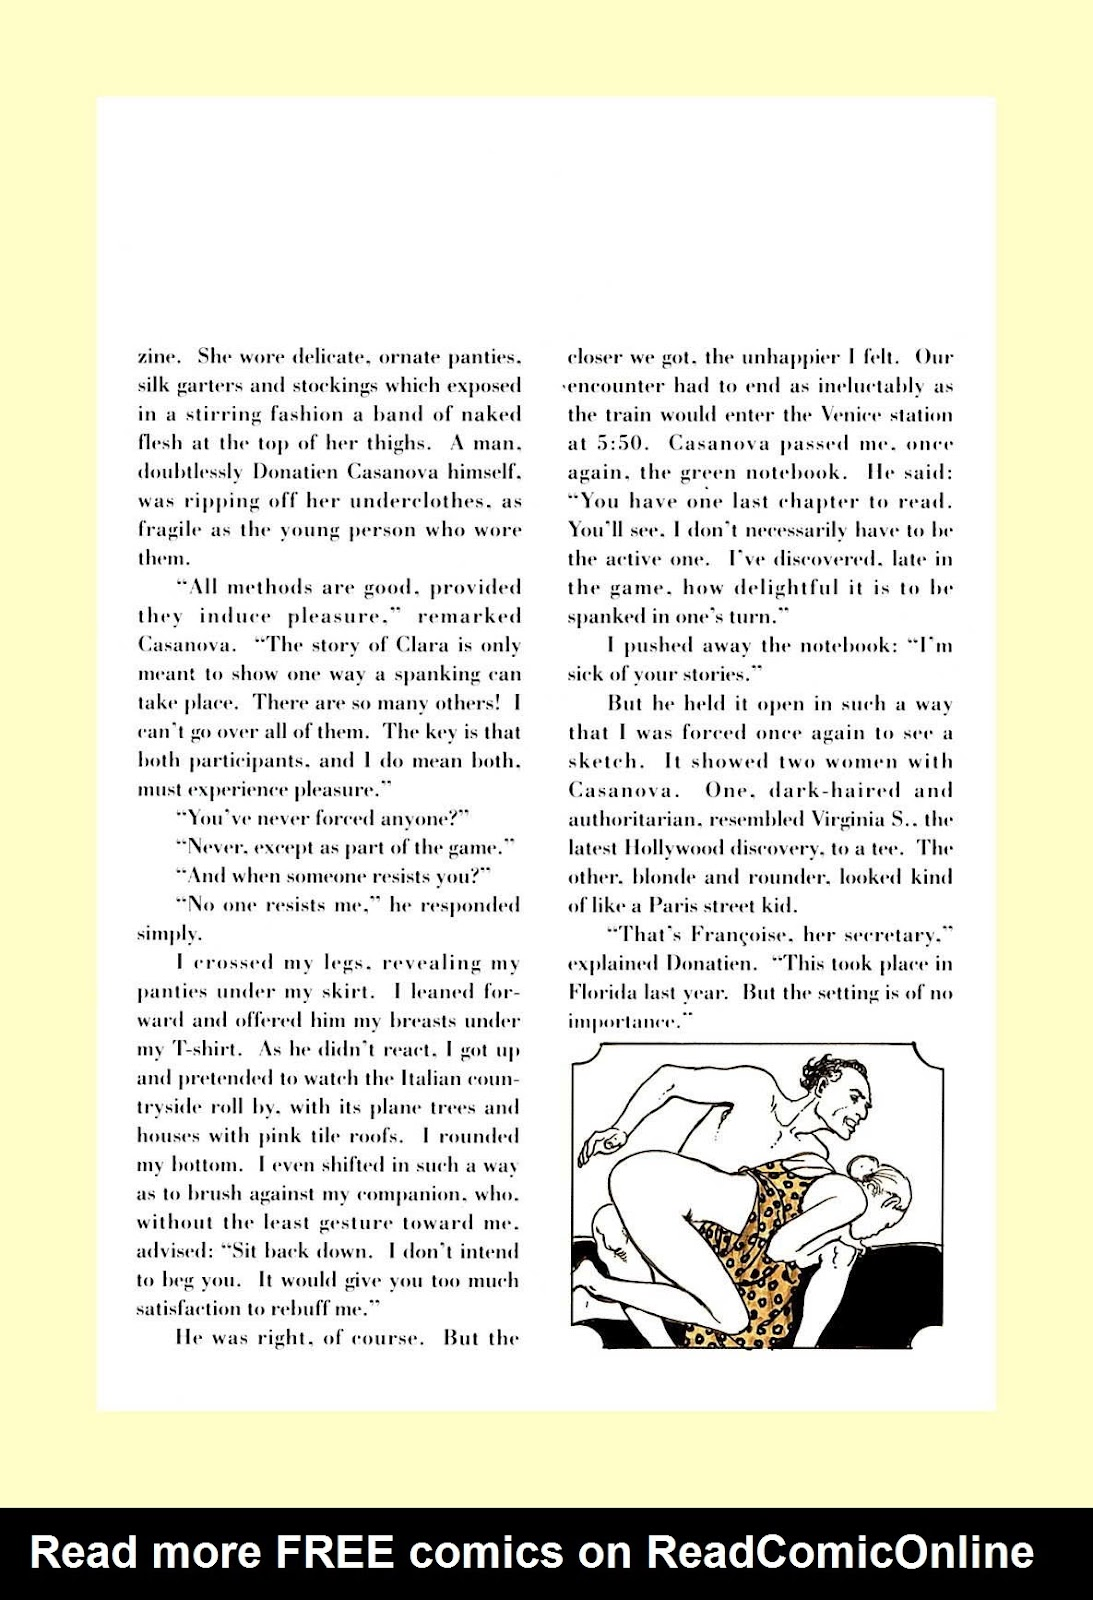 Read online The Art of Spanking comic -  Issue # TPB - 71